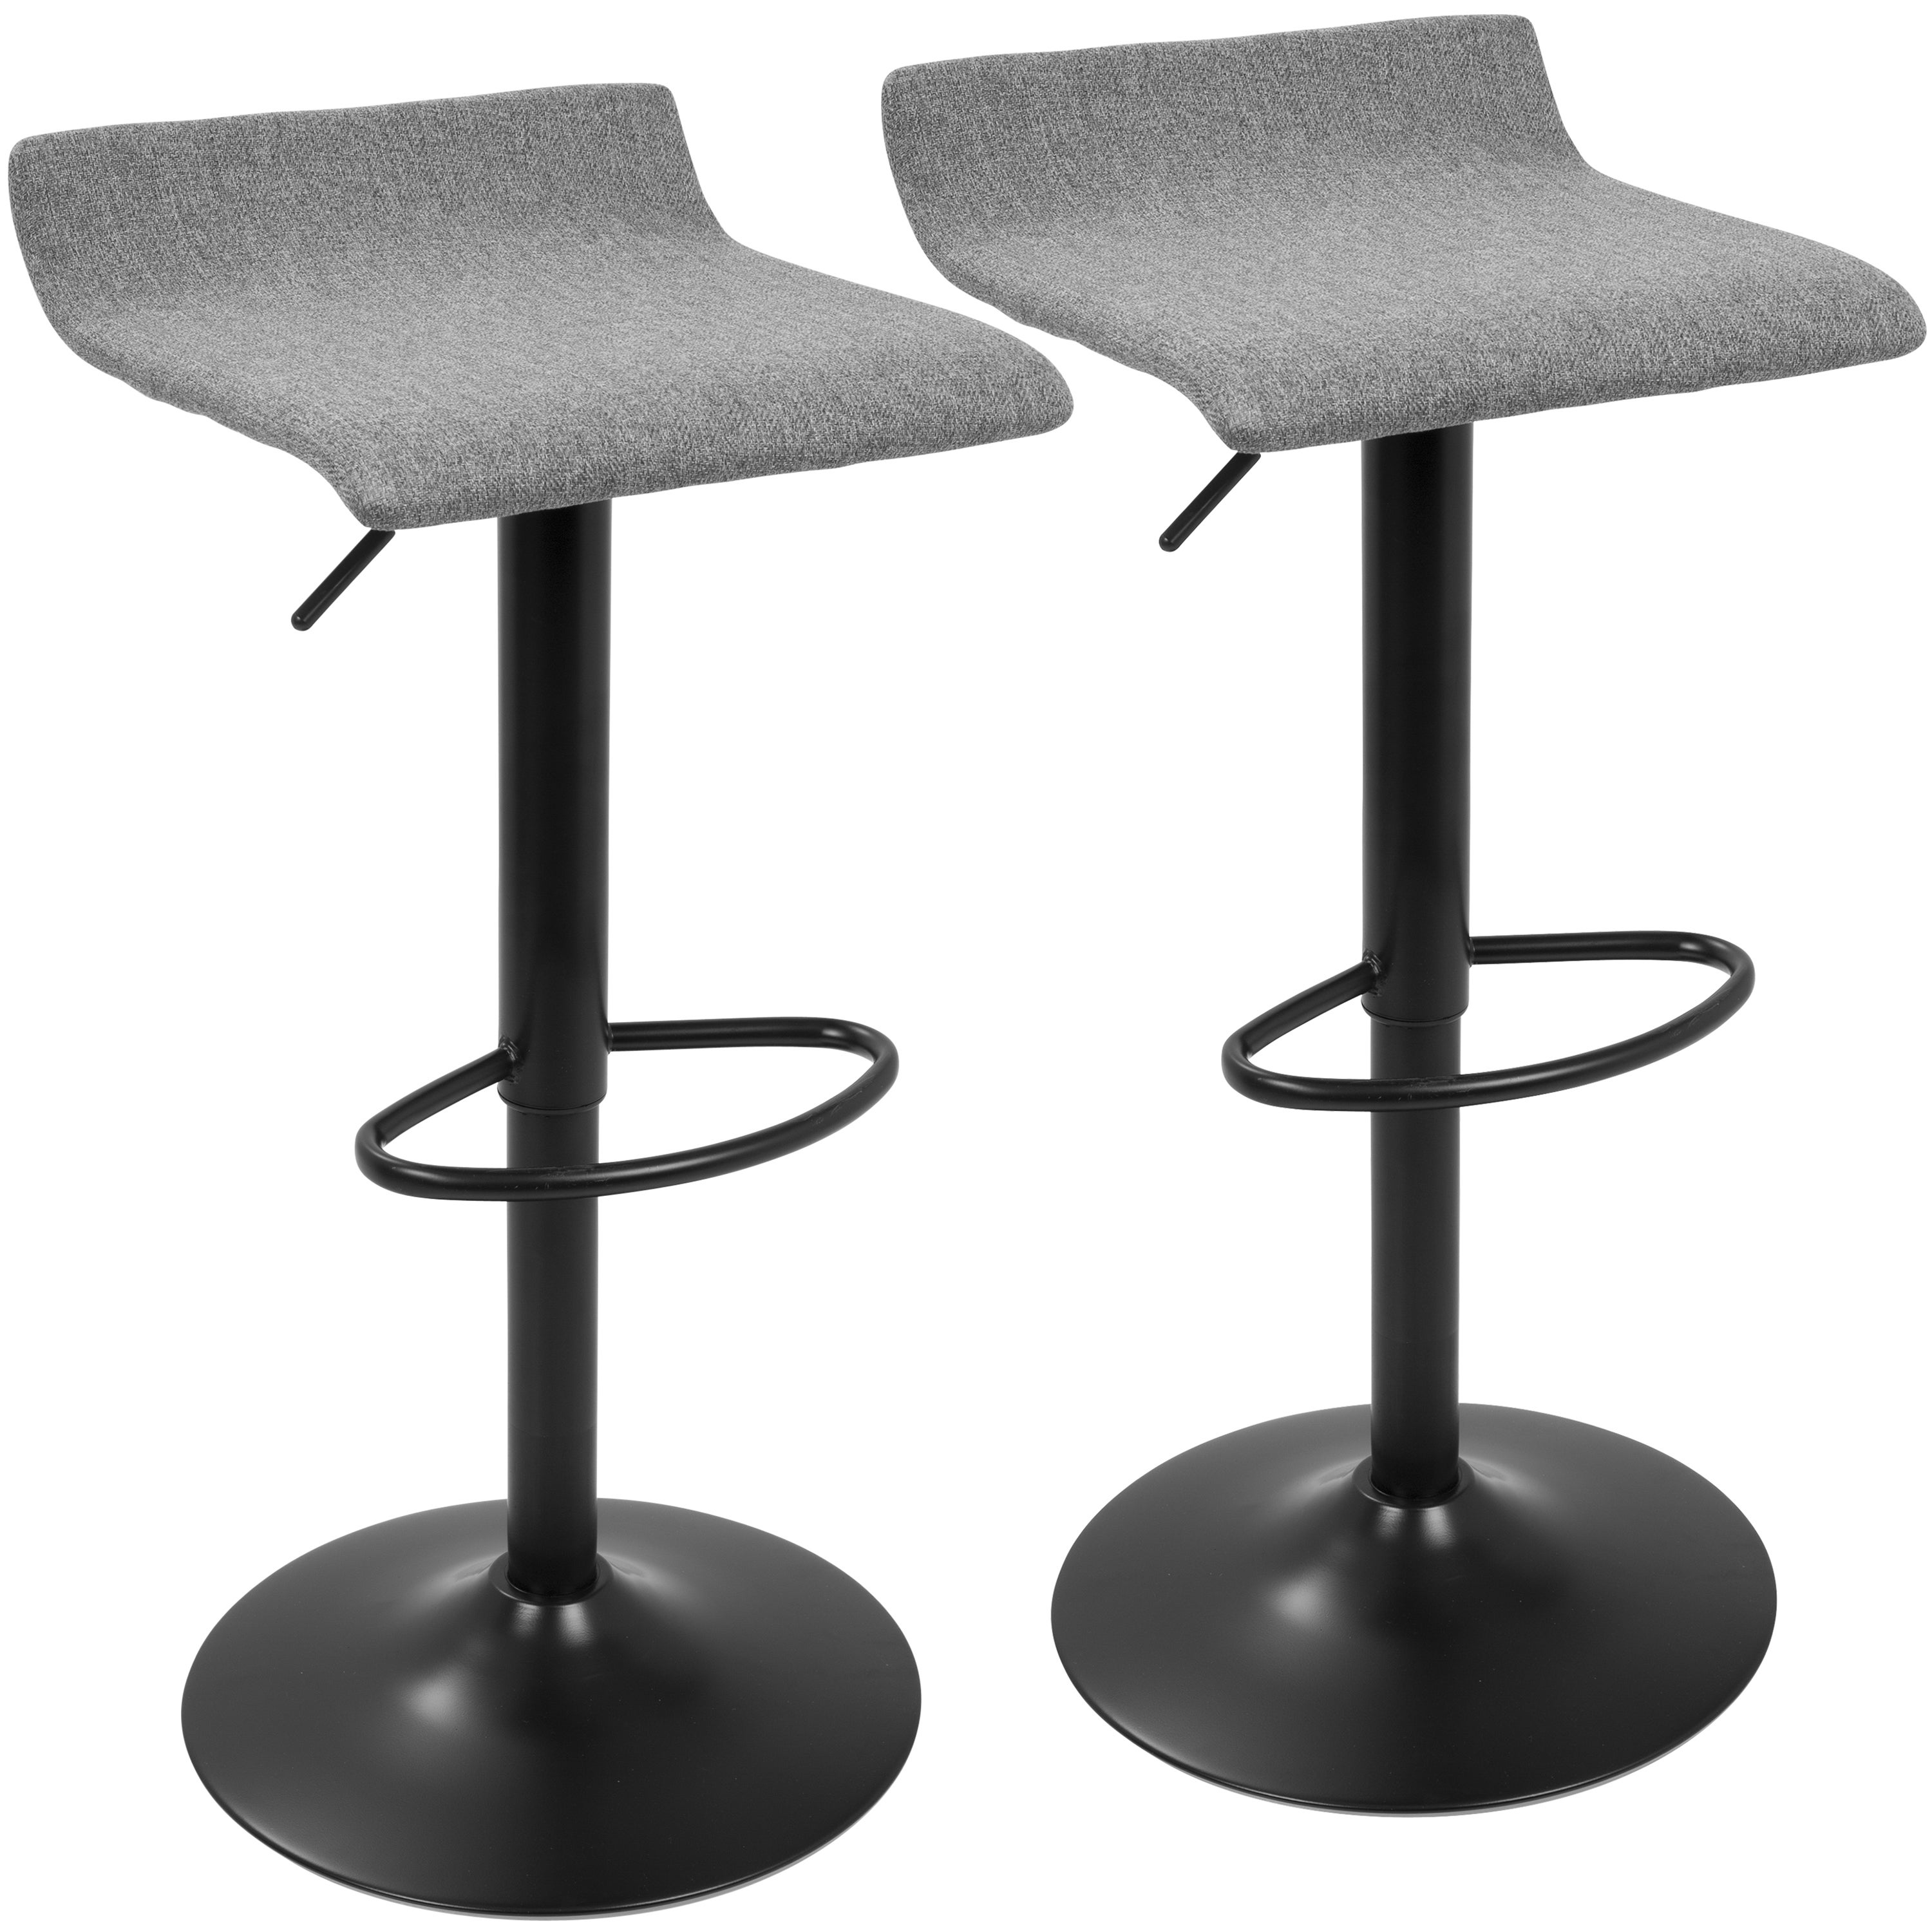 Ale XL Contemporary Adjustable Barstool (Set of 2) (Ale XL Barstool in Black and Grey)